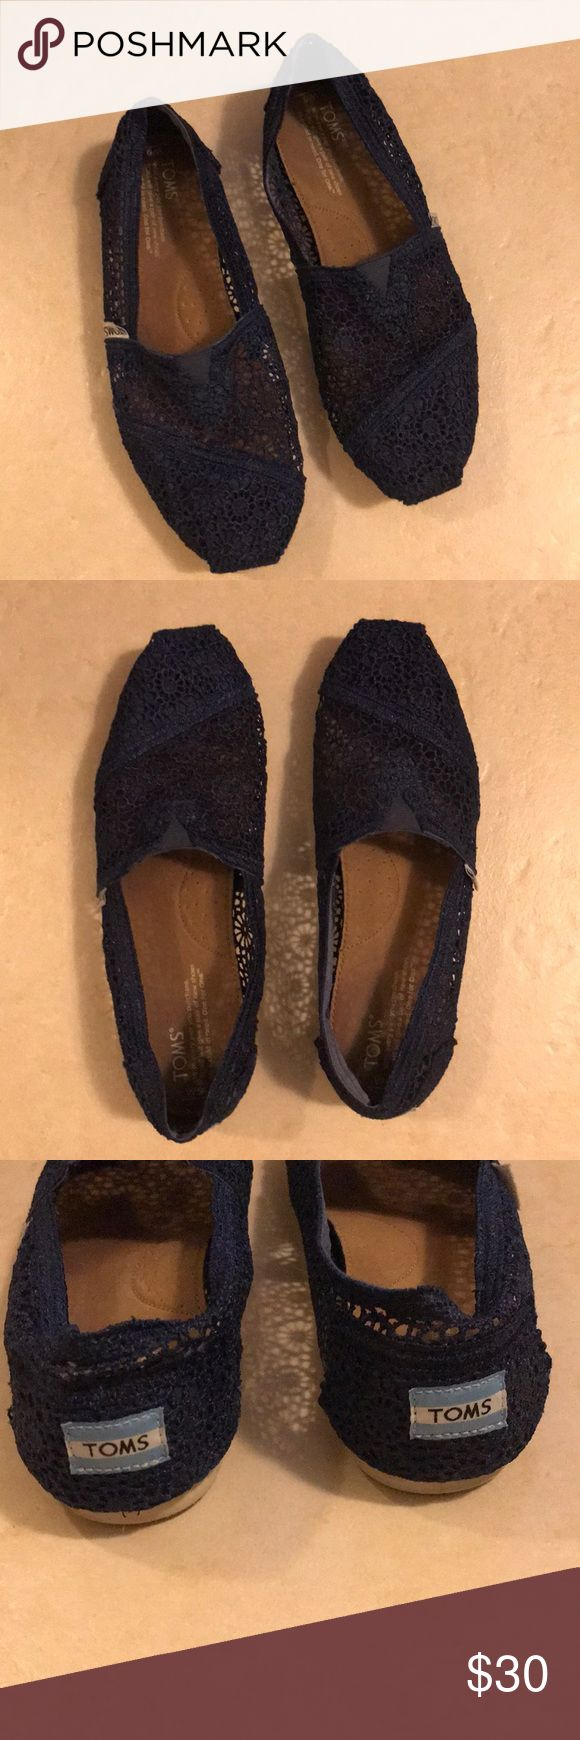 Navy Lace Toms Toms lace flats in navy blue. Worn a bit, but you can only tell by looking at the soles! Toms Shoes Flats & Loafers